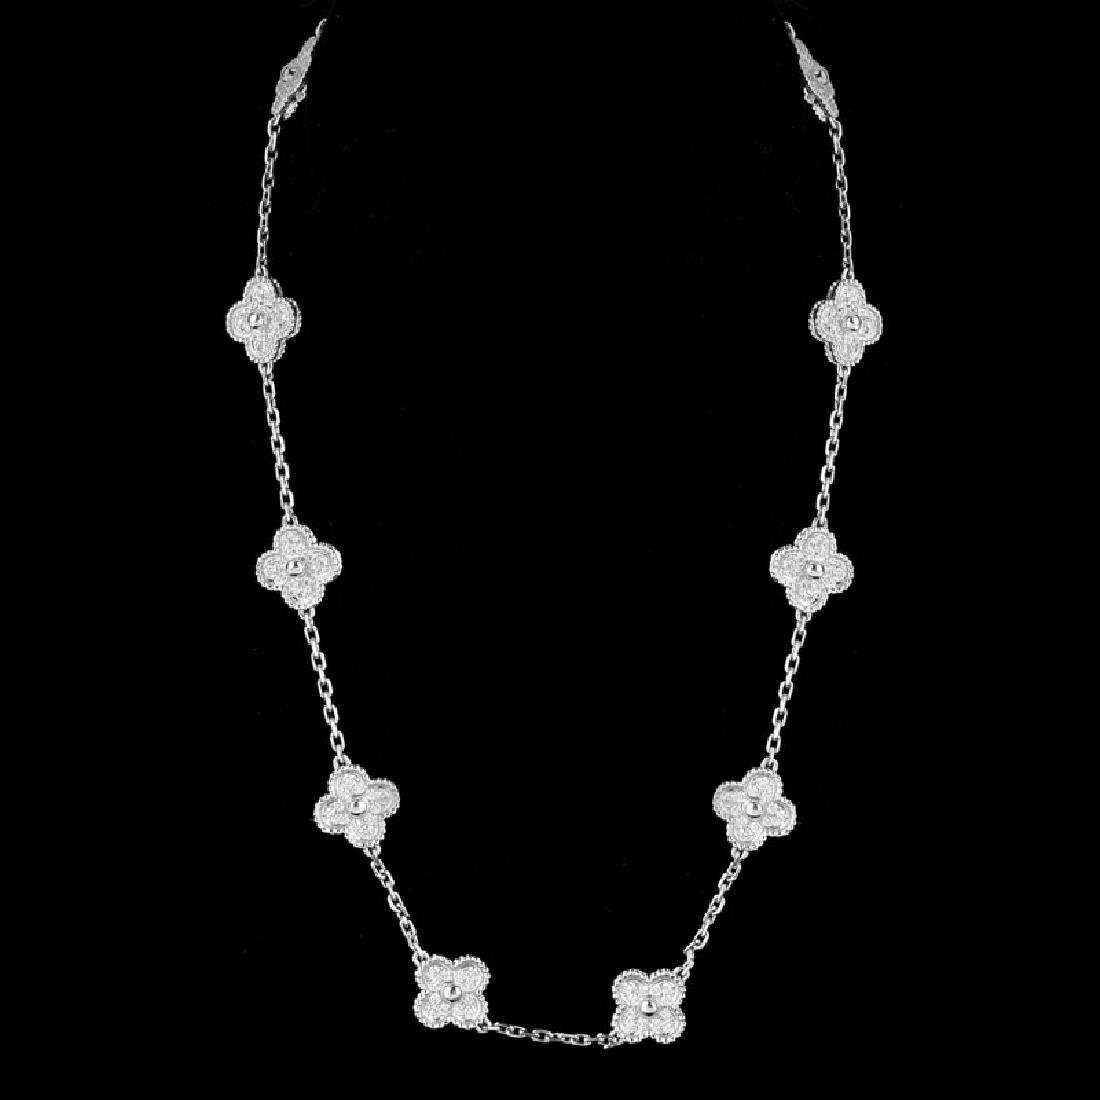 Van Cleef & Arpels Style Diamond and 18 Karat White